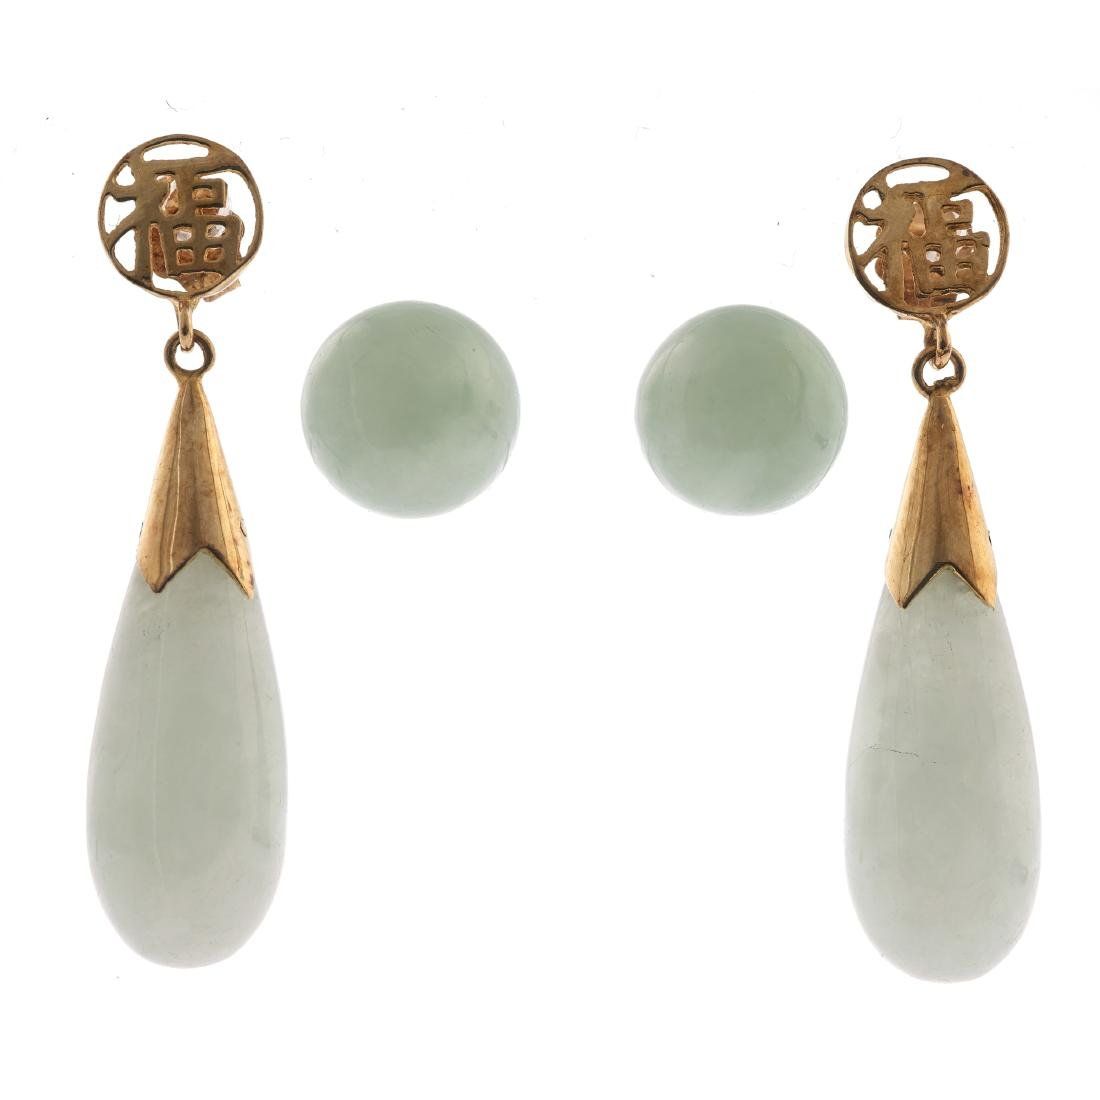 A collection of two pairs of jade, 14k earrings